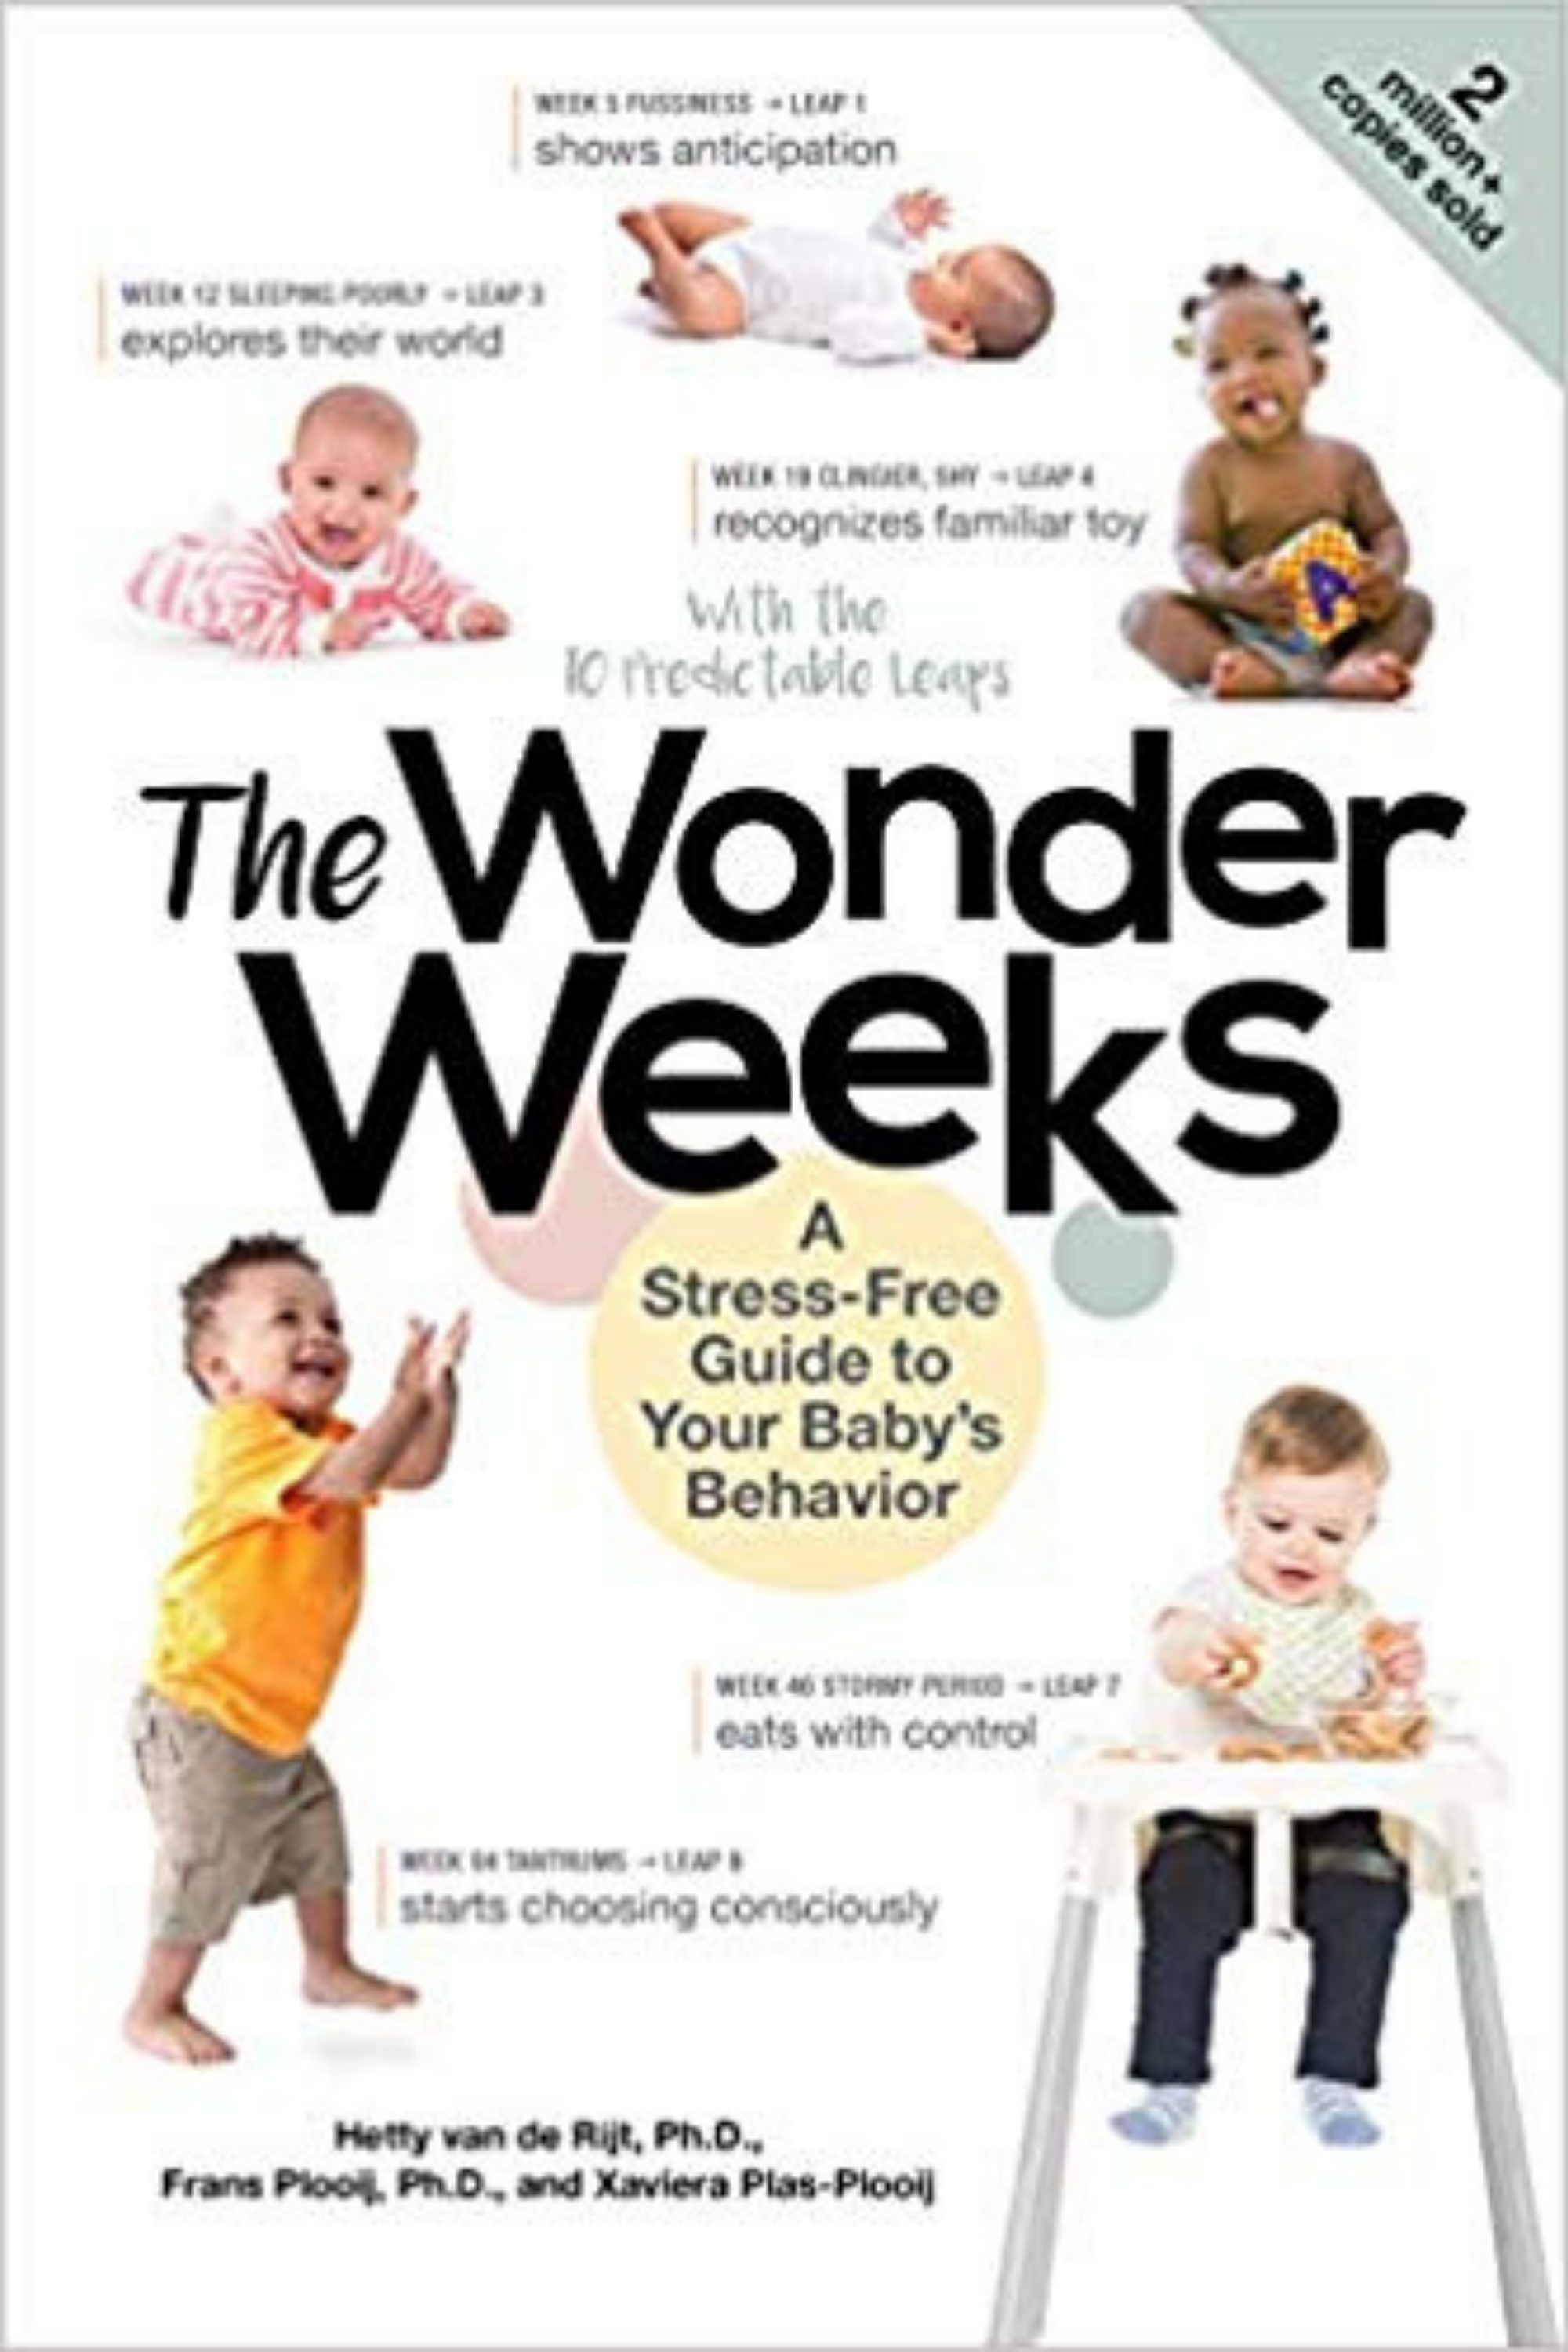 The Wonder Weeks (New Edition)  Xaviera Plas-Plooij Frans X. Plooij Hetty van de Rijt Courtney Elmer.png